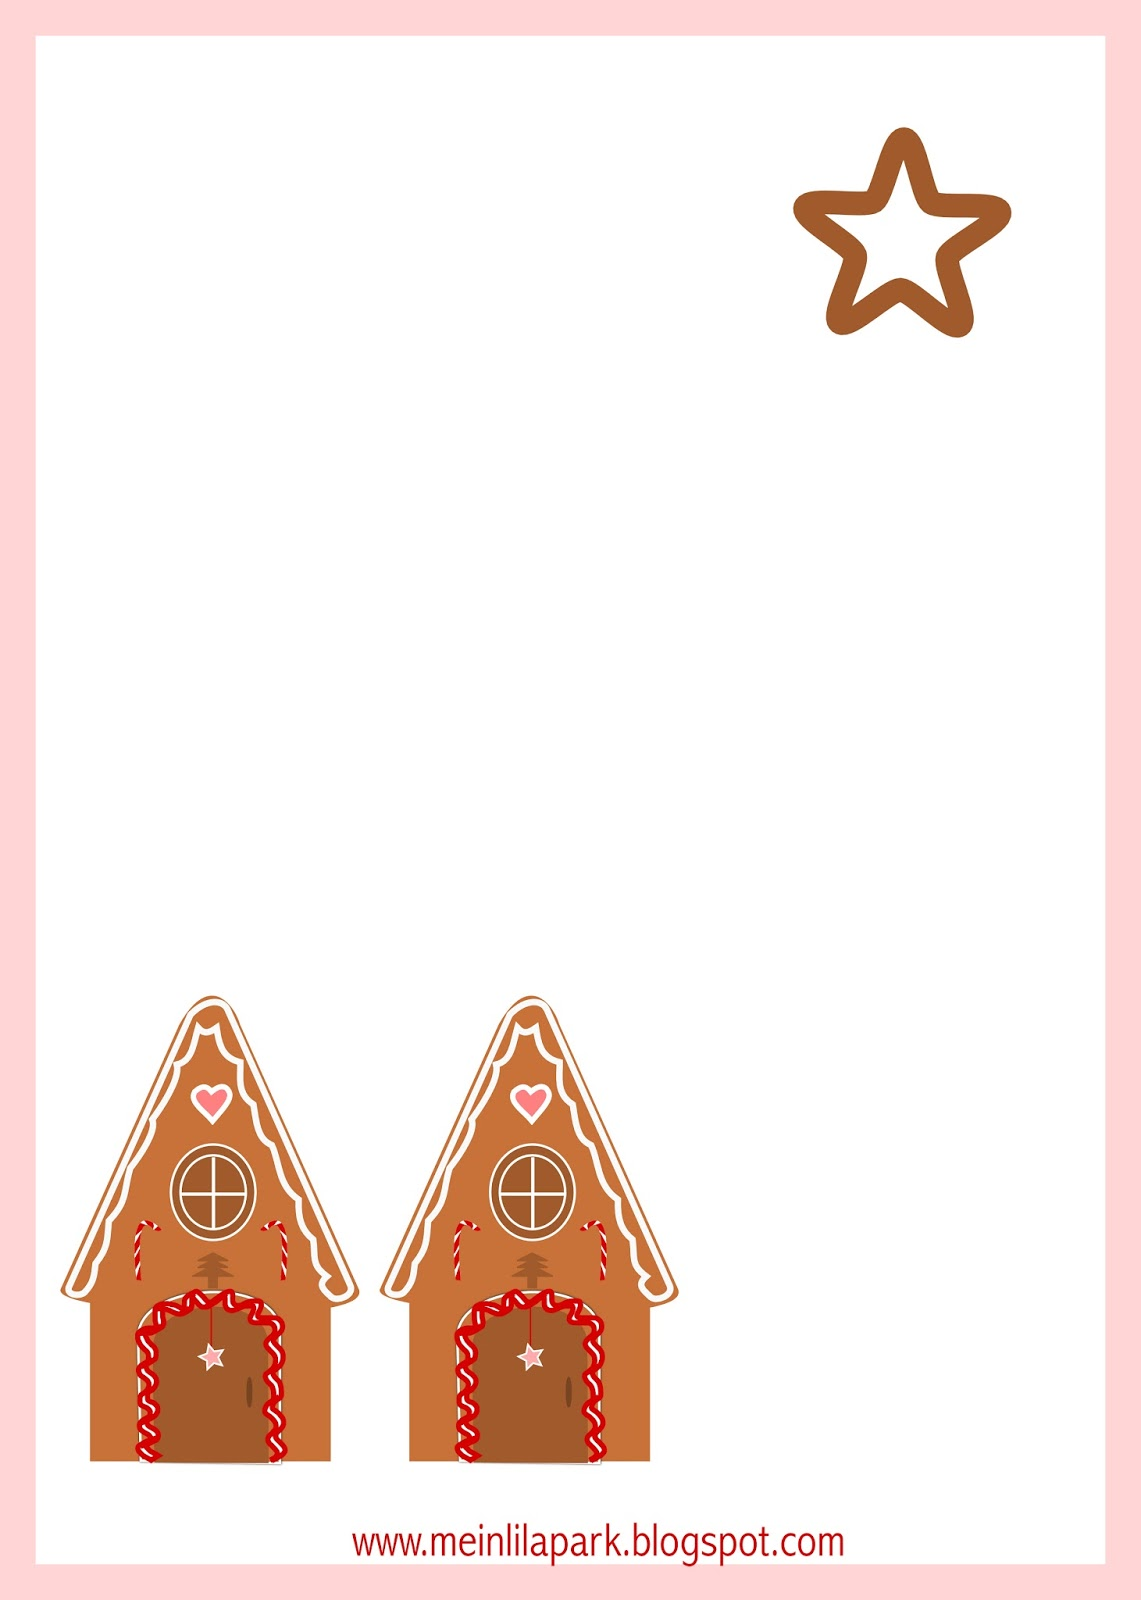 Gingerbread house free printables - Free Printable Gingerbread House Tags